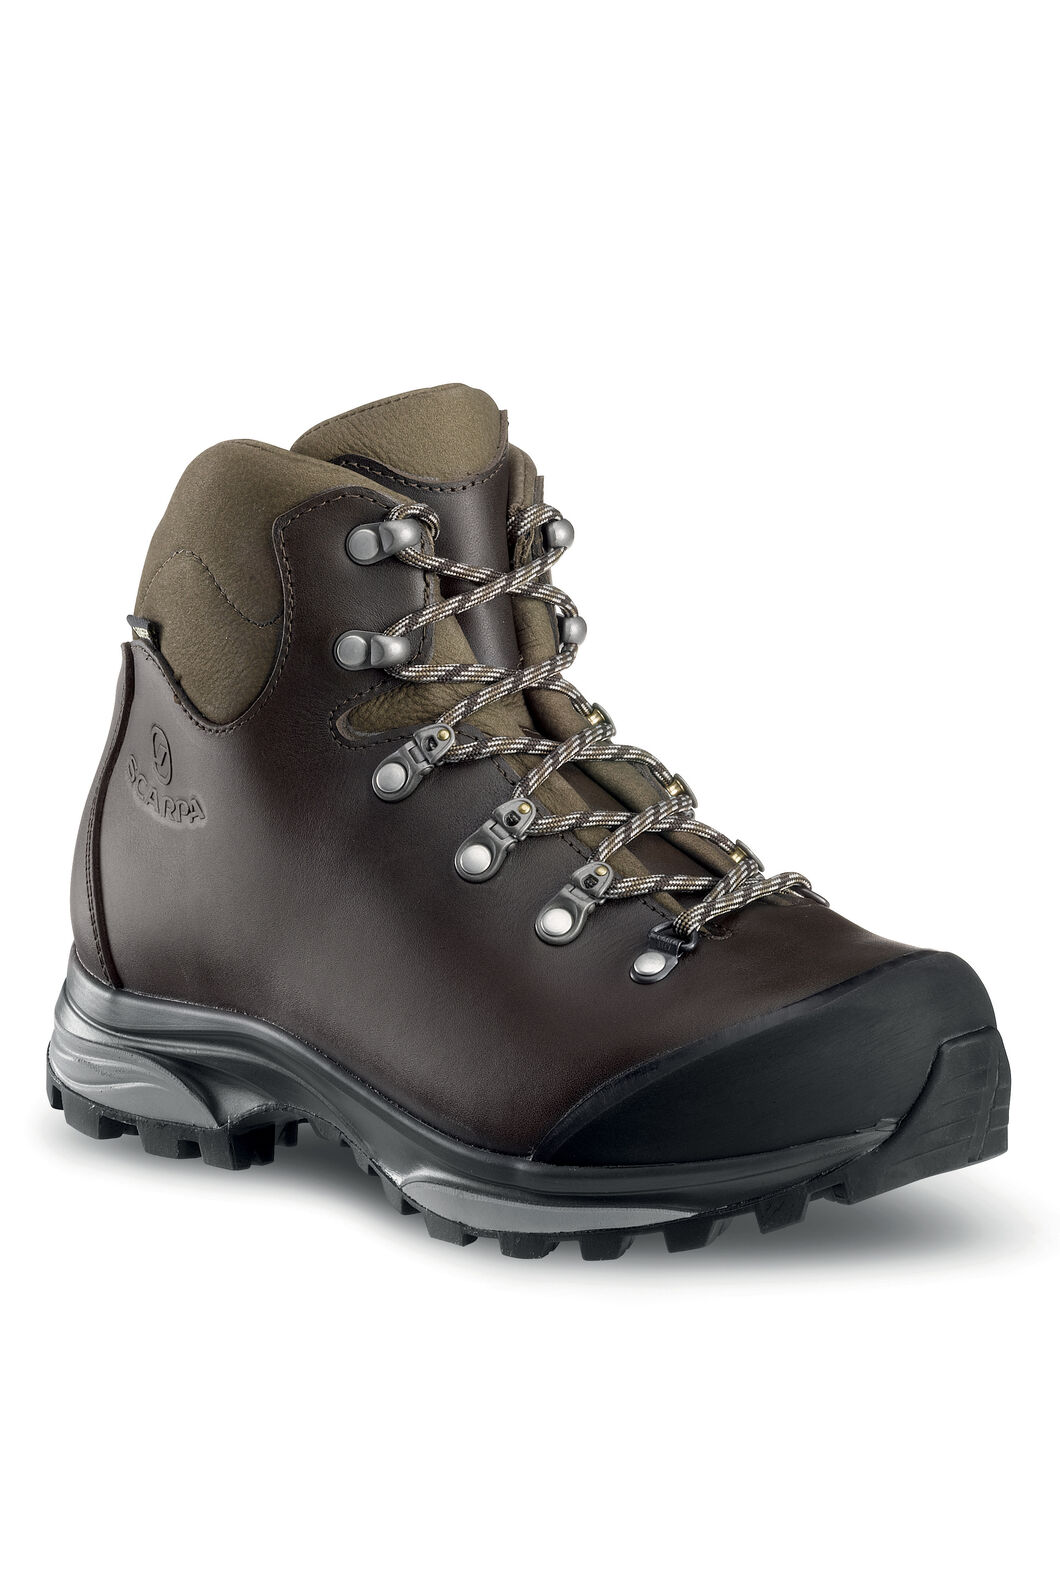 Scarpa Delta GTX Boots - Men's, Brown, hi-res